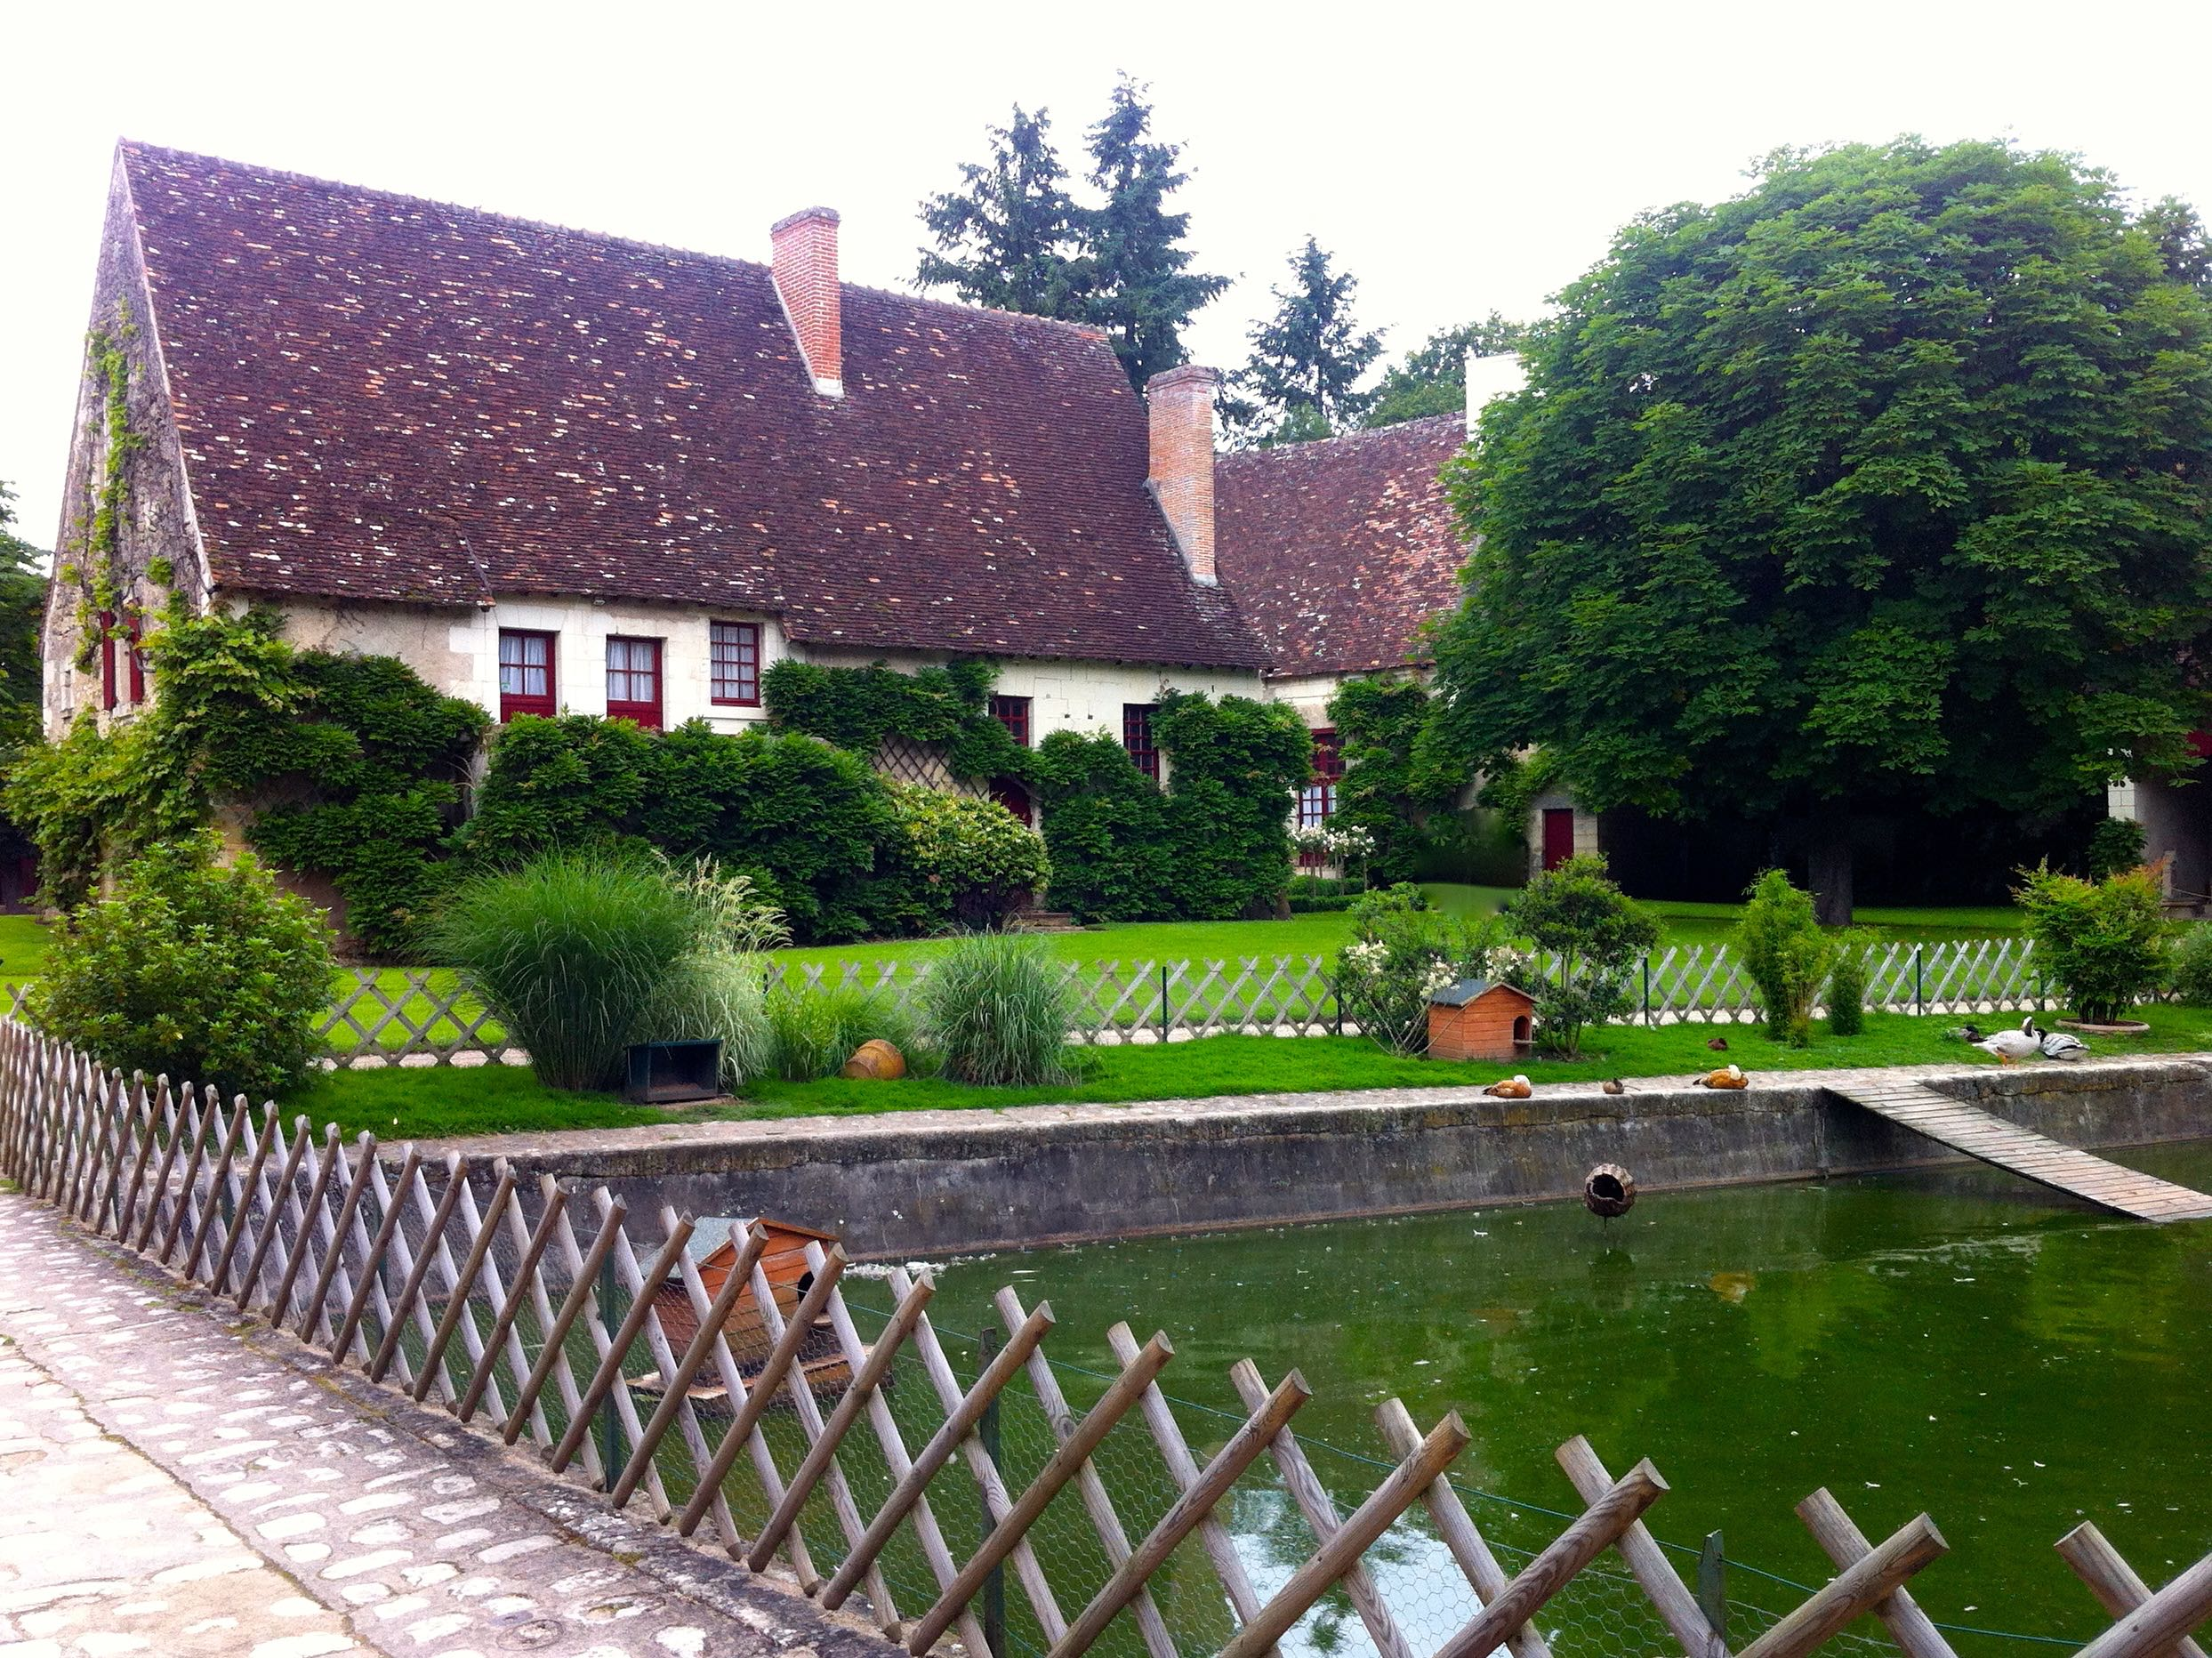 The 16th century farm buildings at chateau de chenonceau